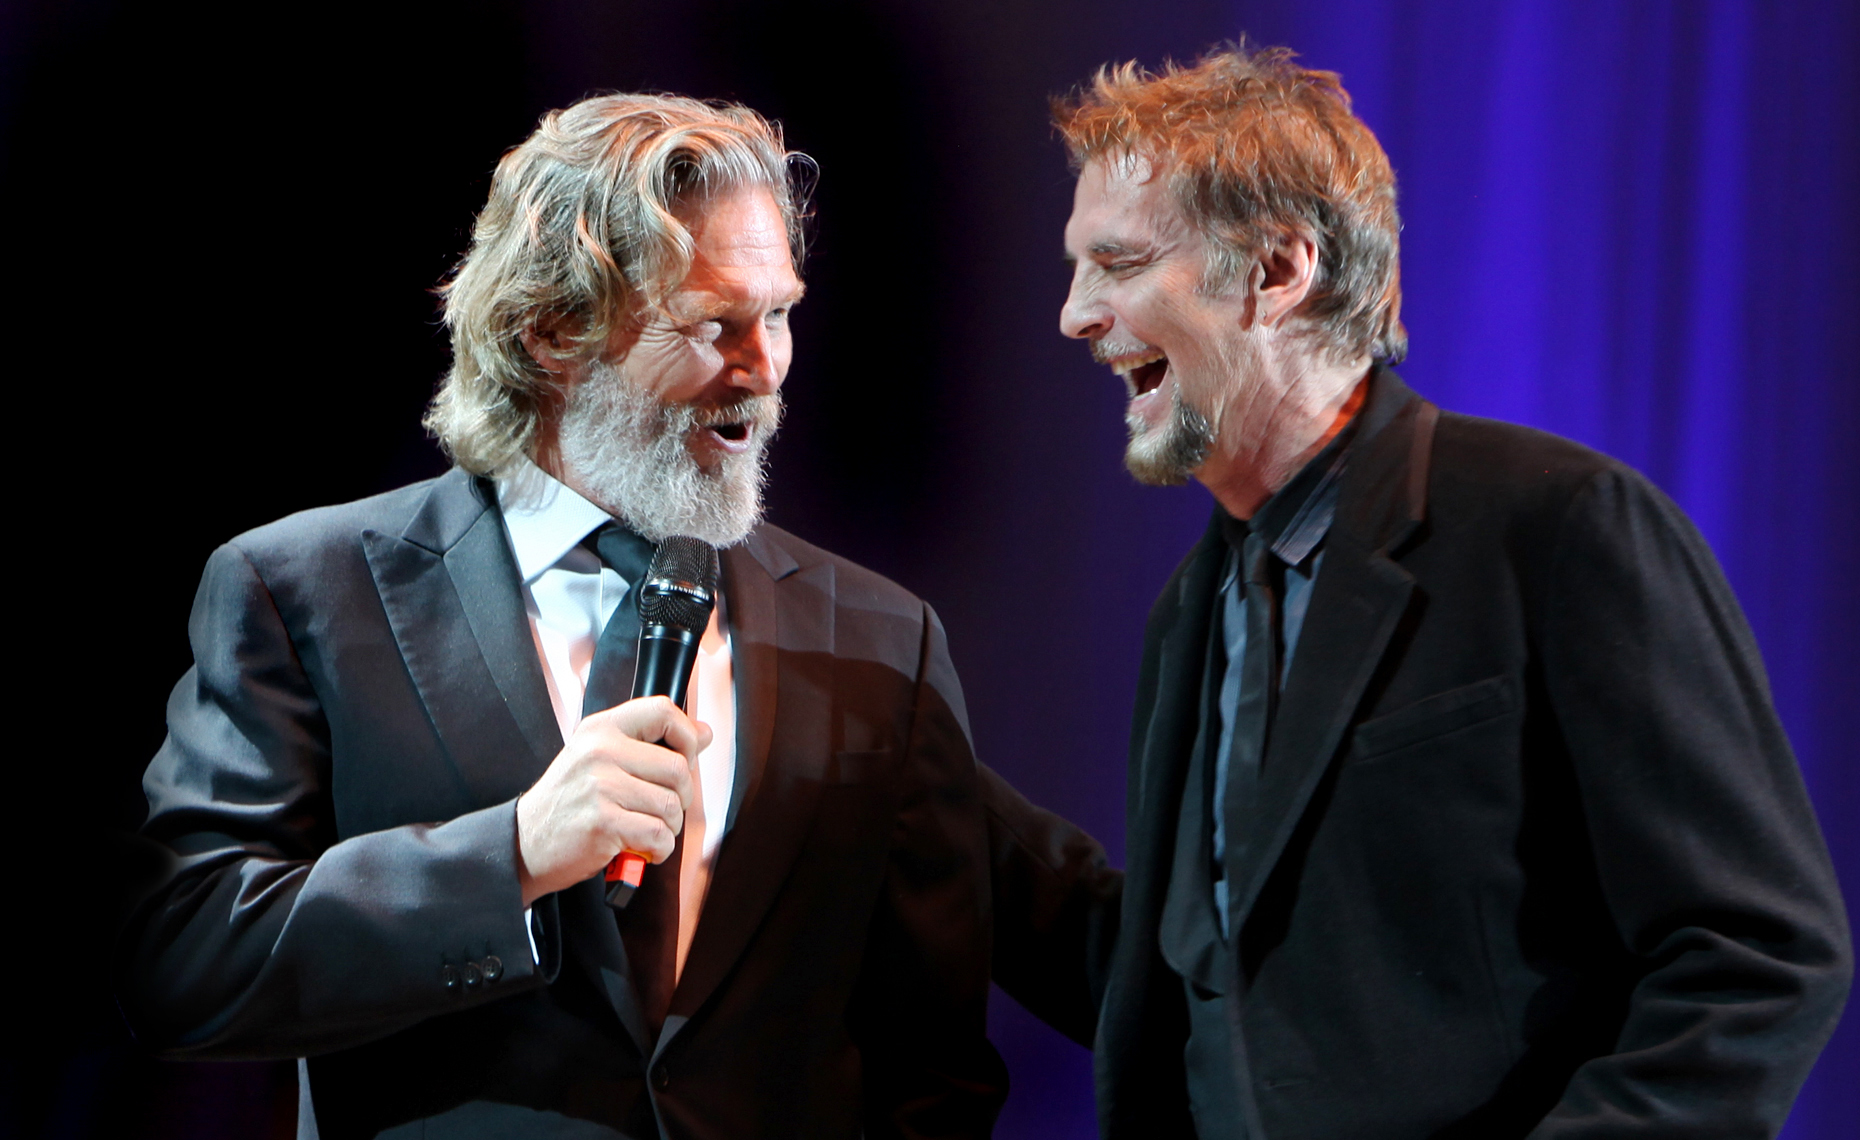 Kenny Loggins and Jeff Bridges